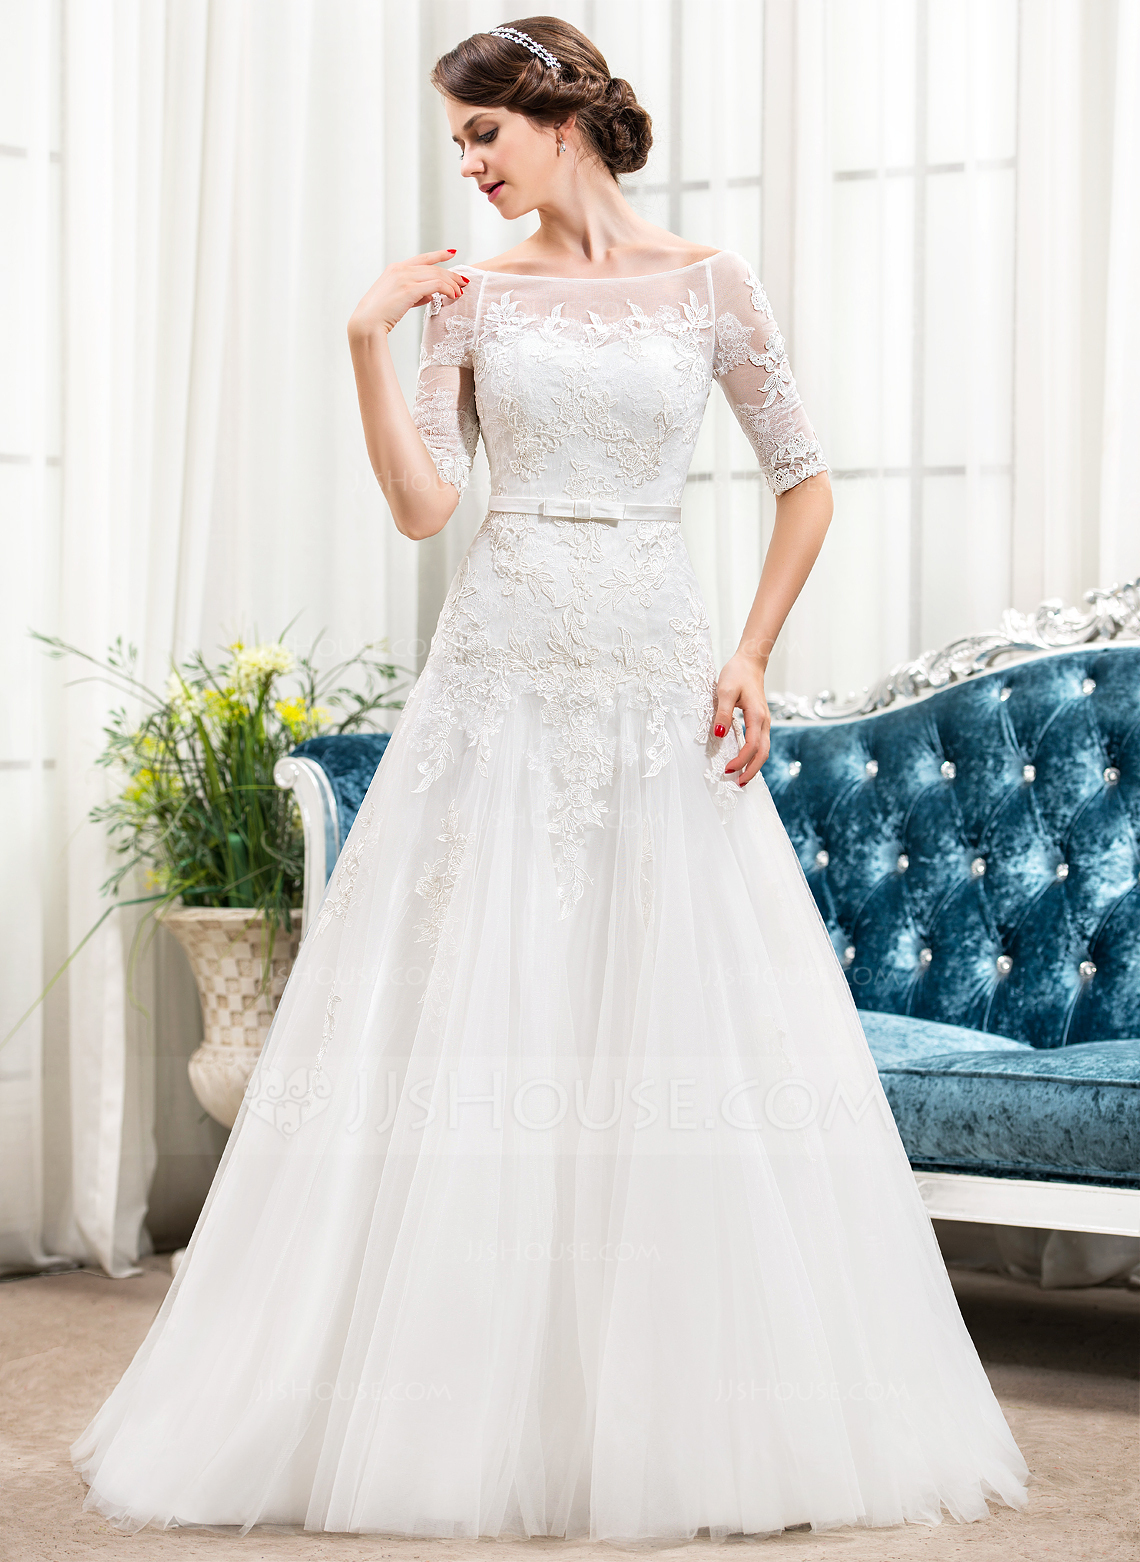 A Line Princess Off The Shoulder Sweep Train Tulle Lace Wedding Dress With Bow S g jjshouse wedding dress Home Wedding Dresses Loading zoom